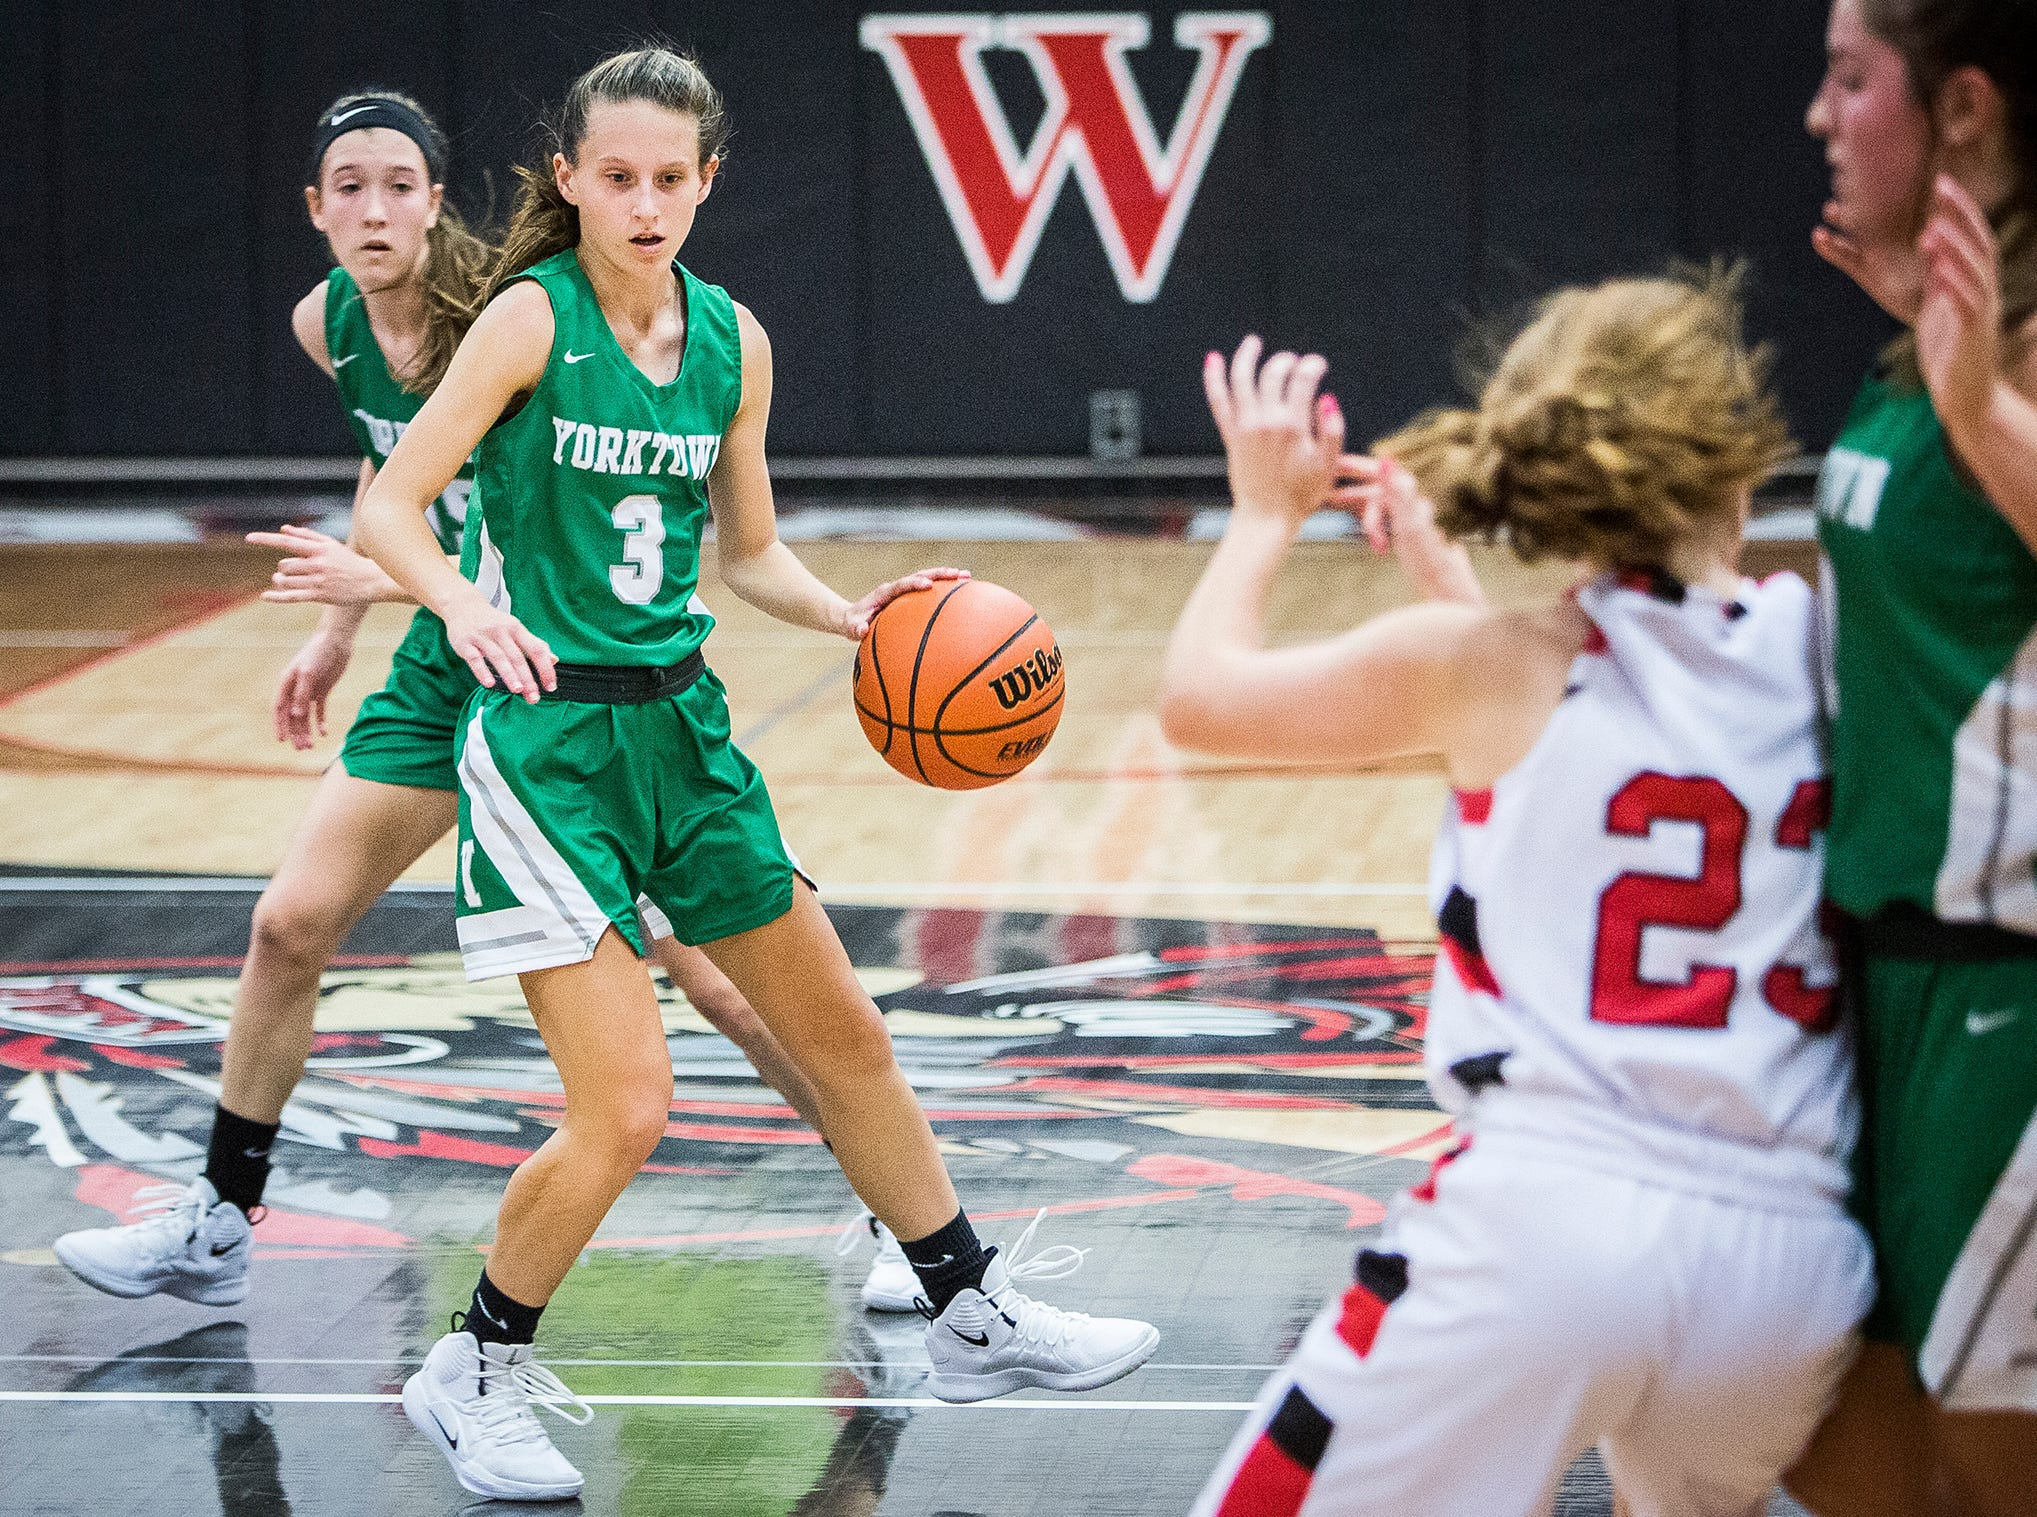 Yorktown's Elizabeth Reece dribbles against Wapahani's defense during their game at Wapahani High School Tuesday, Dec. 4, 2018.